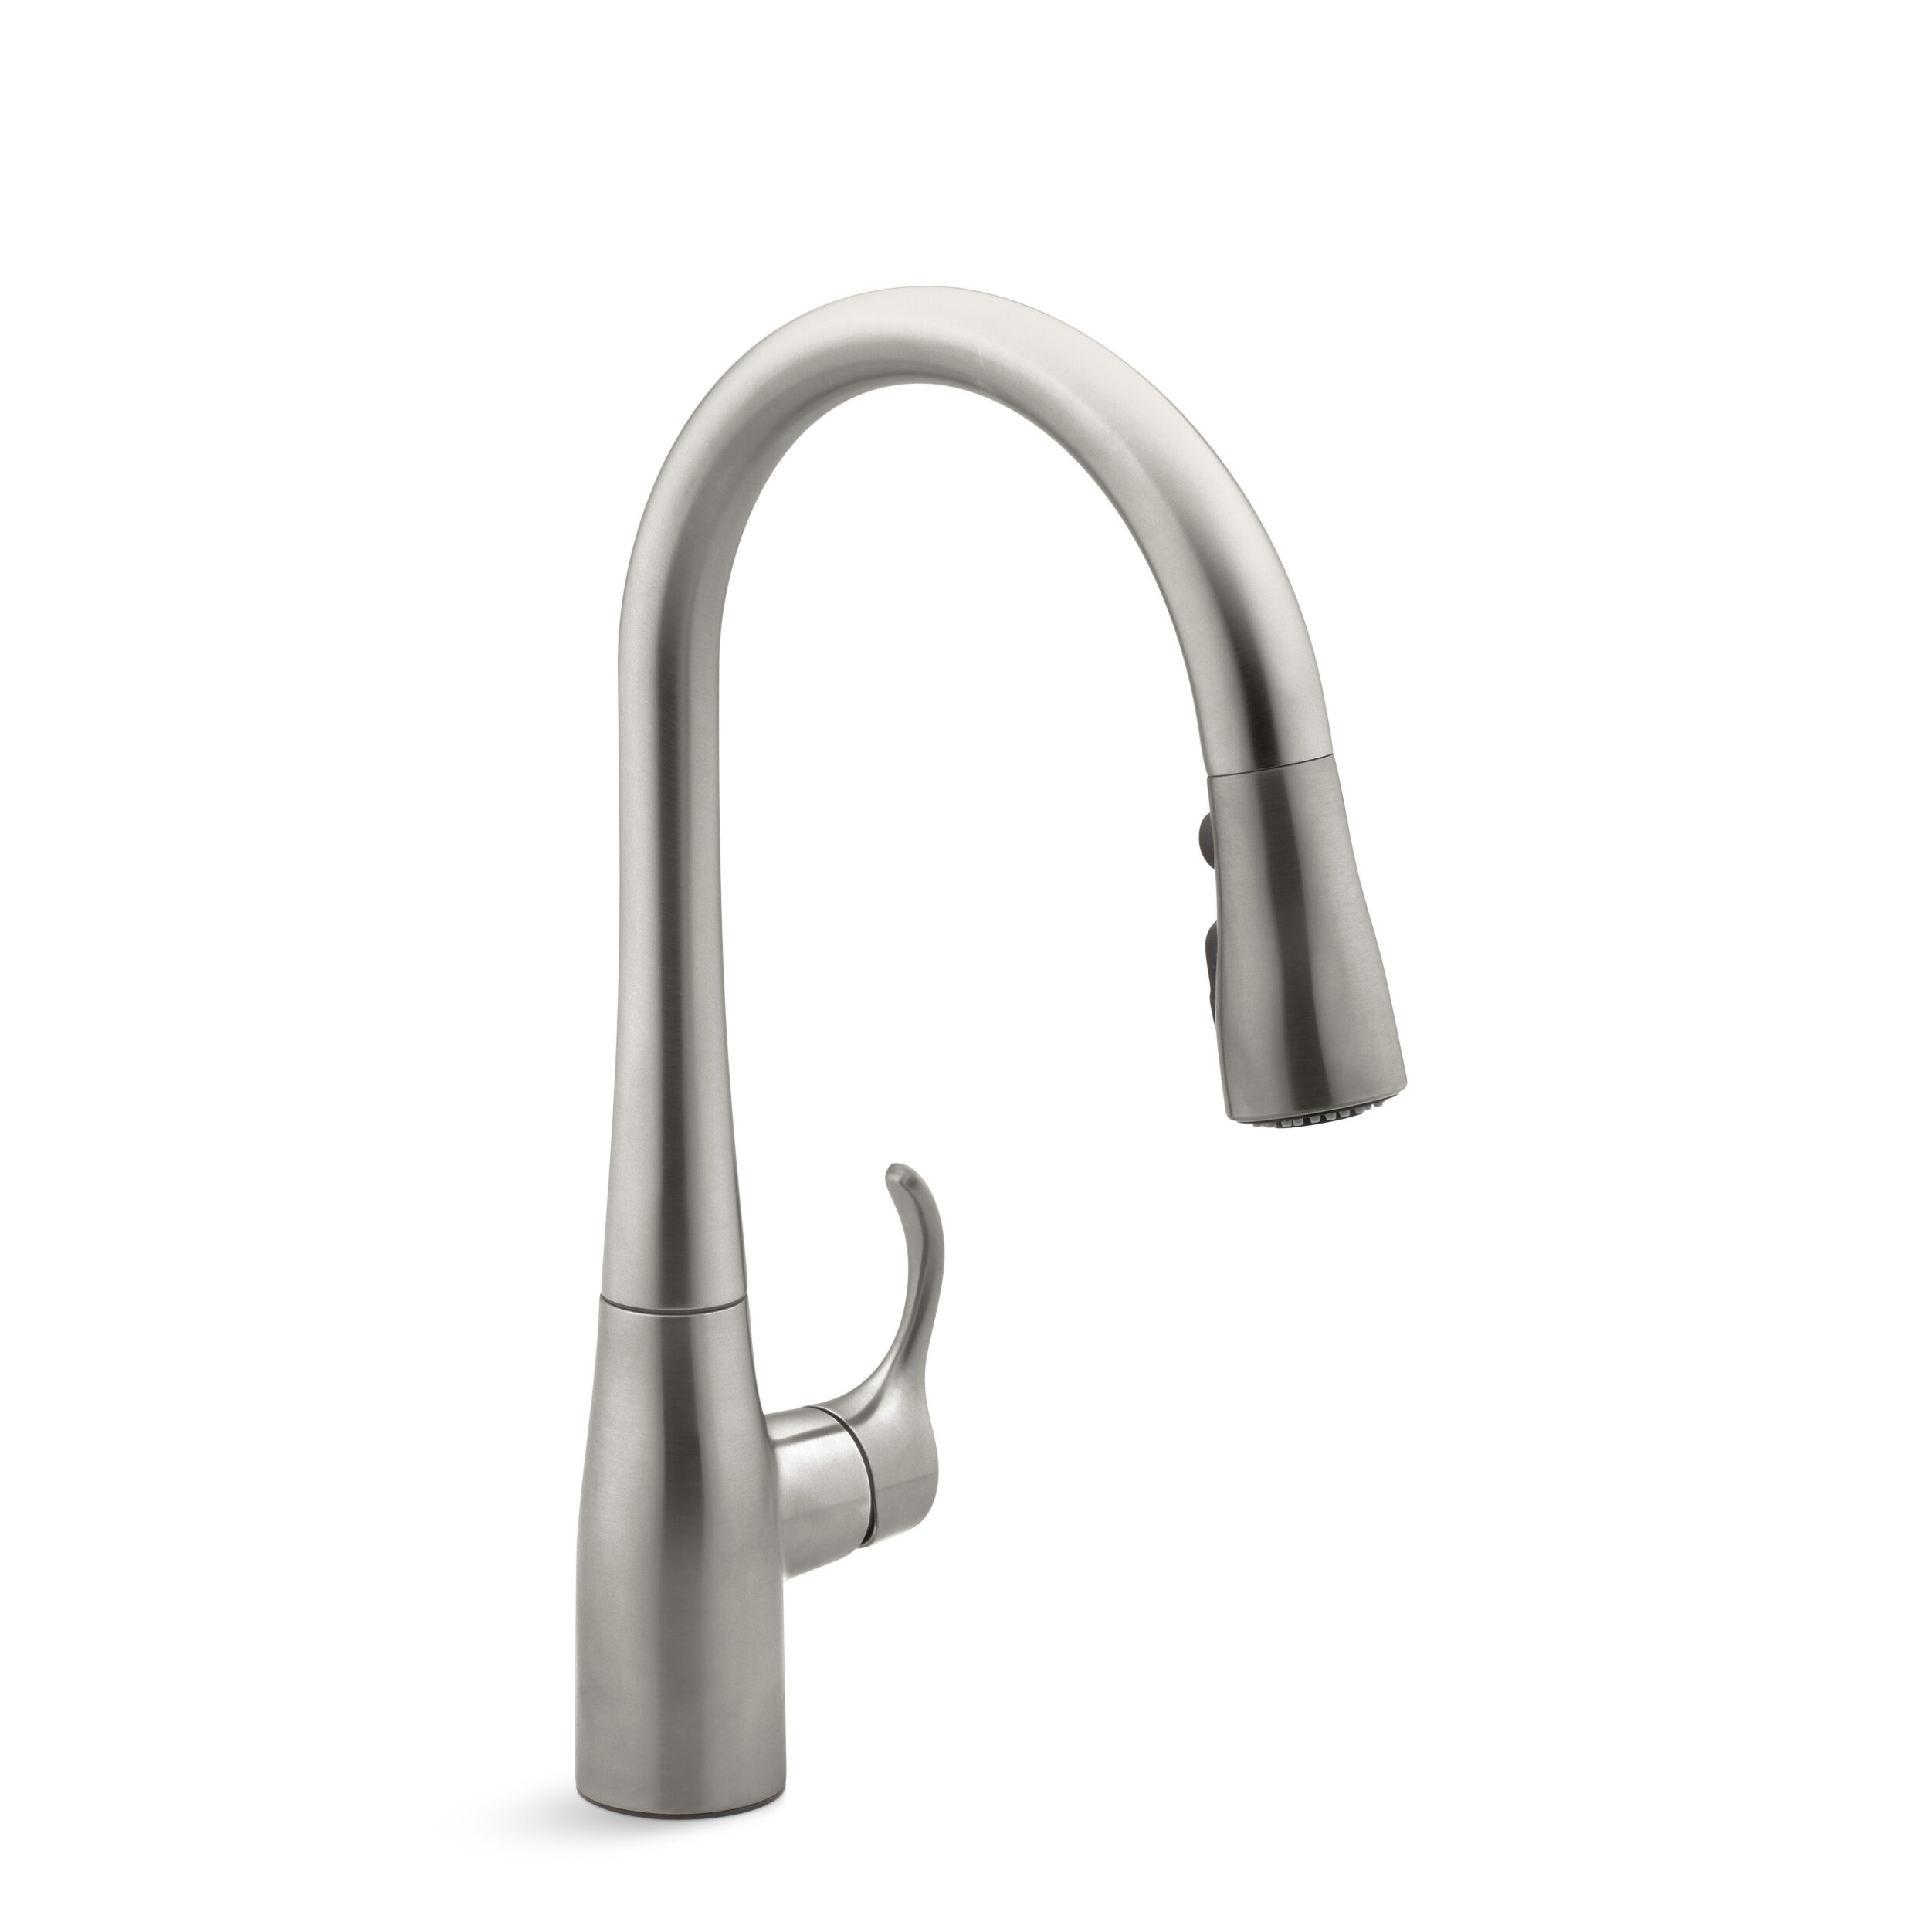 rinse out antique kohler two bo unique sink faucets cross of spread com pull and kitchen handle faucet spray photos pre bellera wide htsrec cool